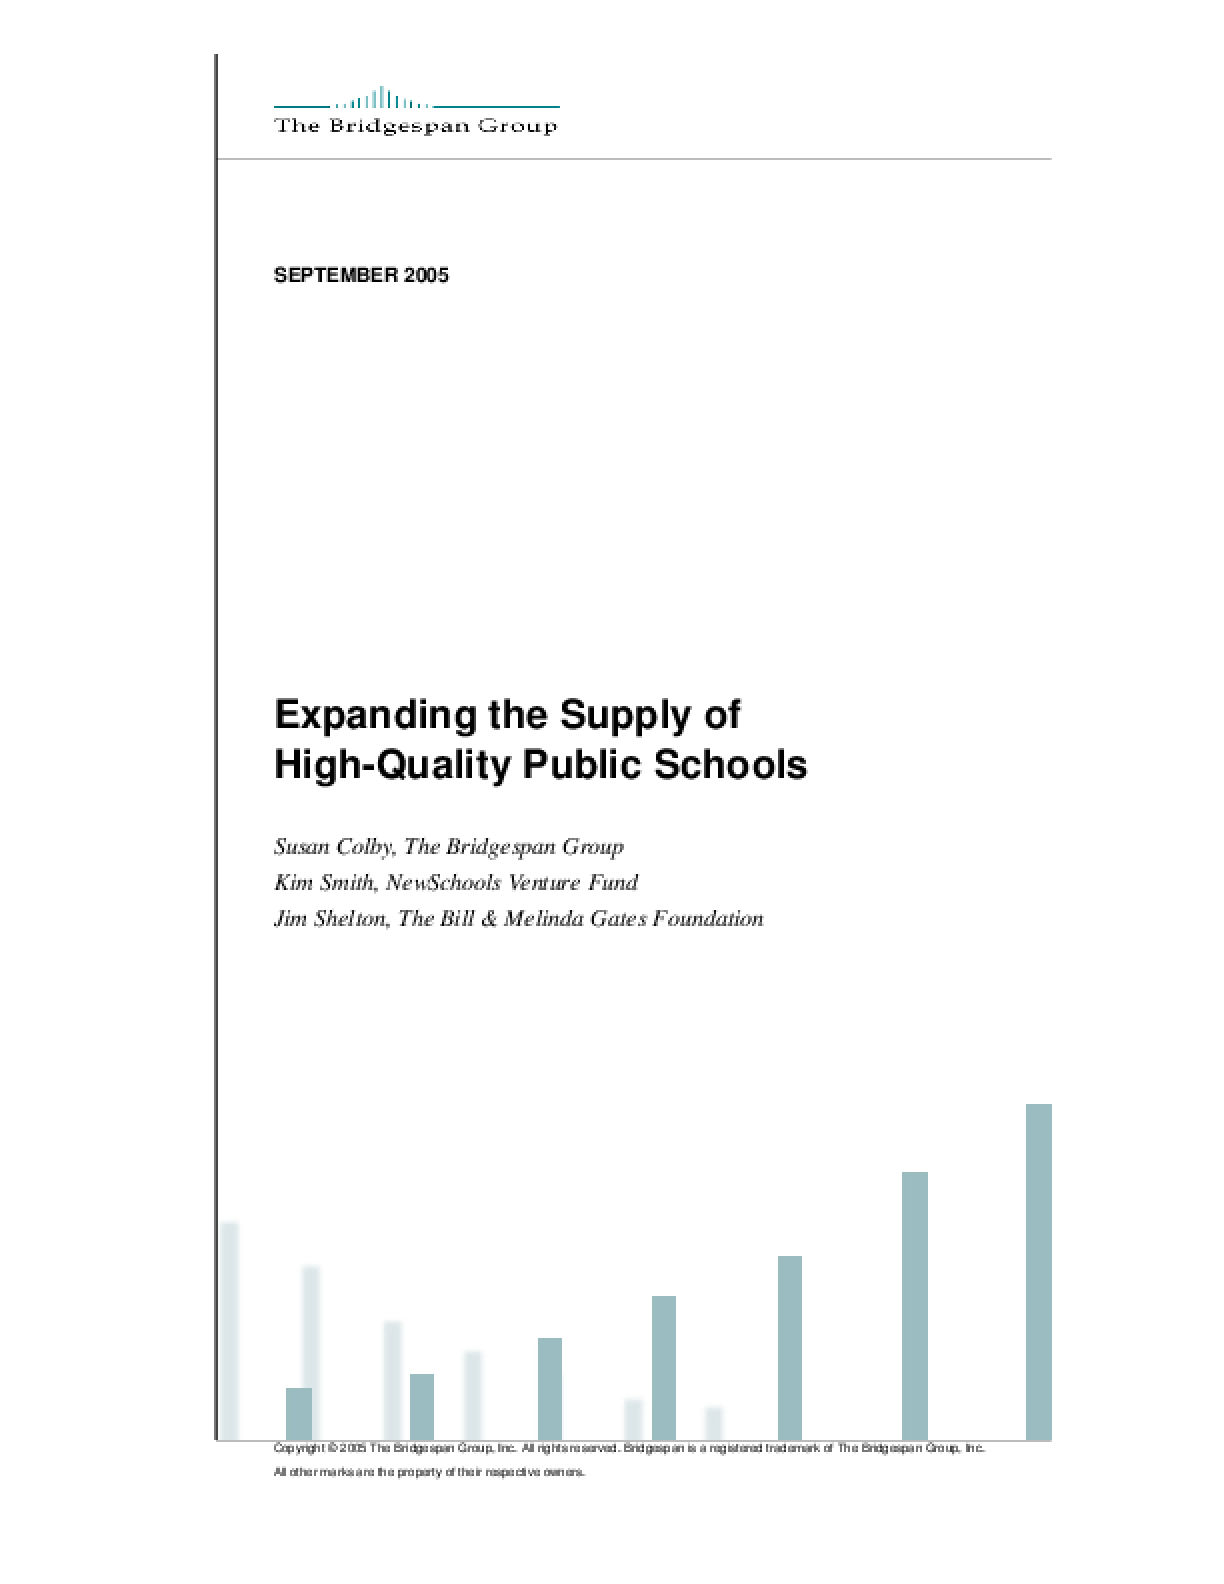 Expanding the Supply of High Quality Public Schools